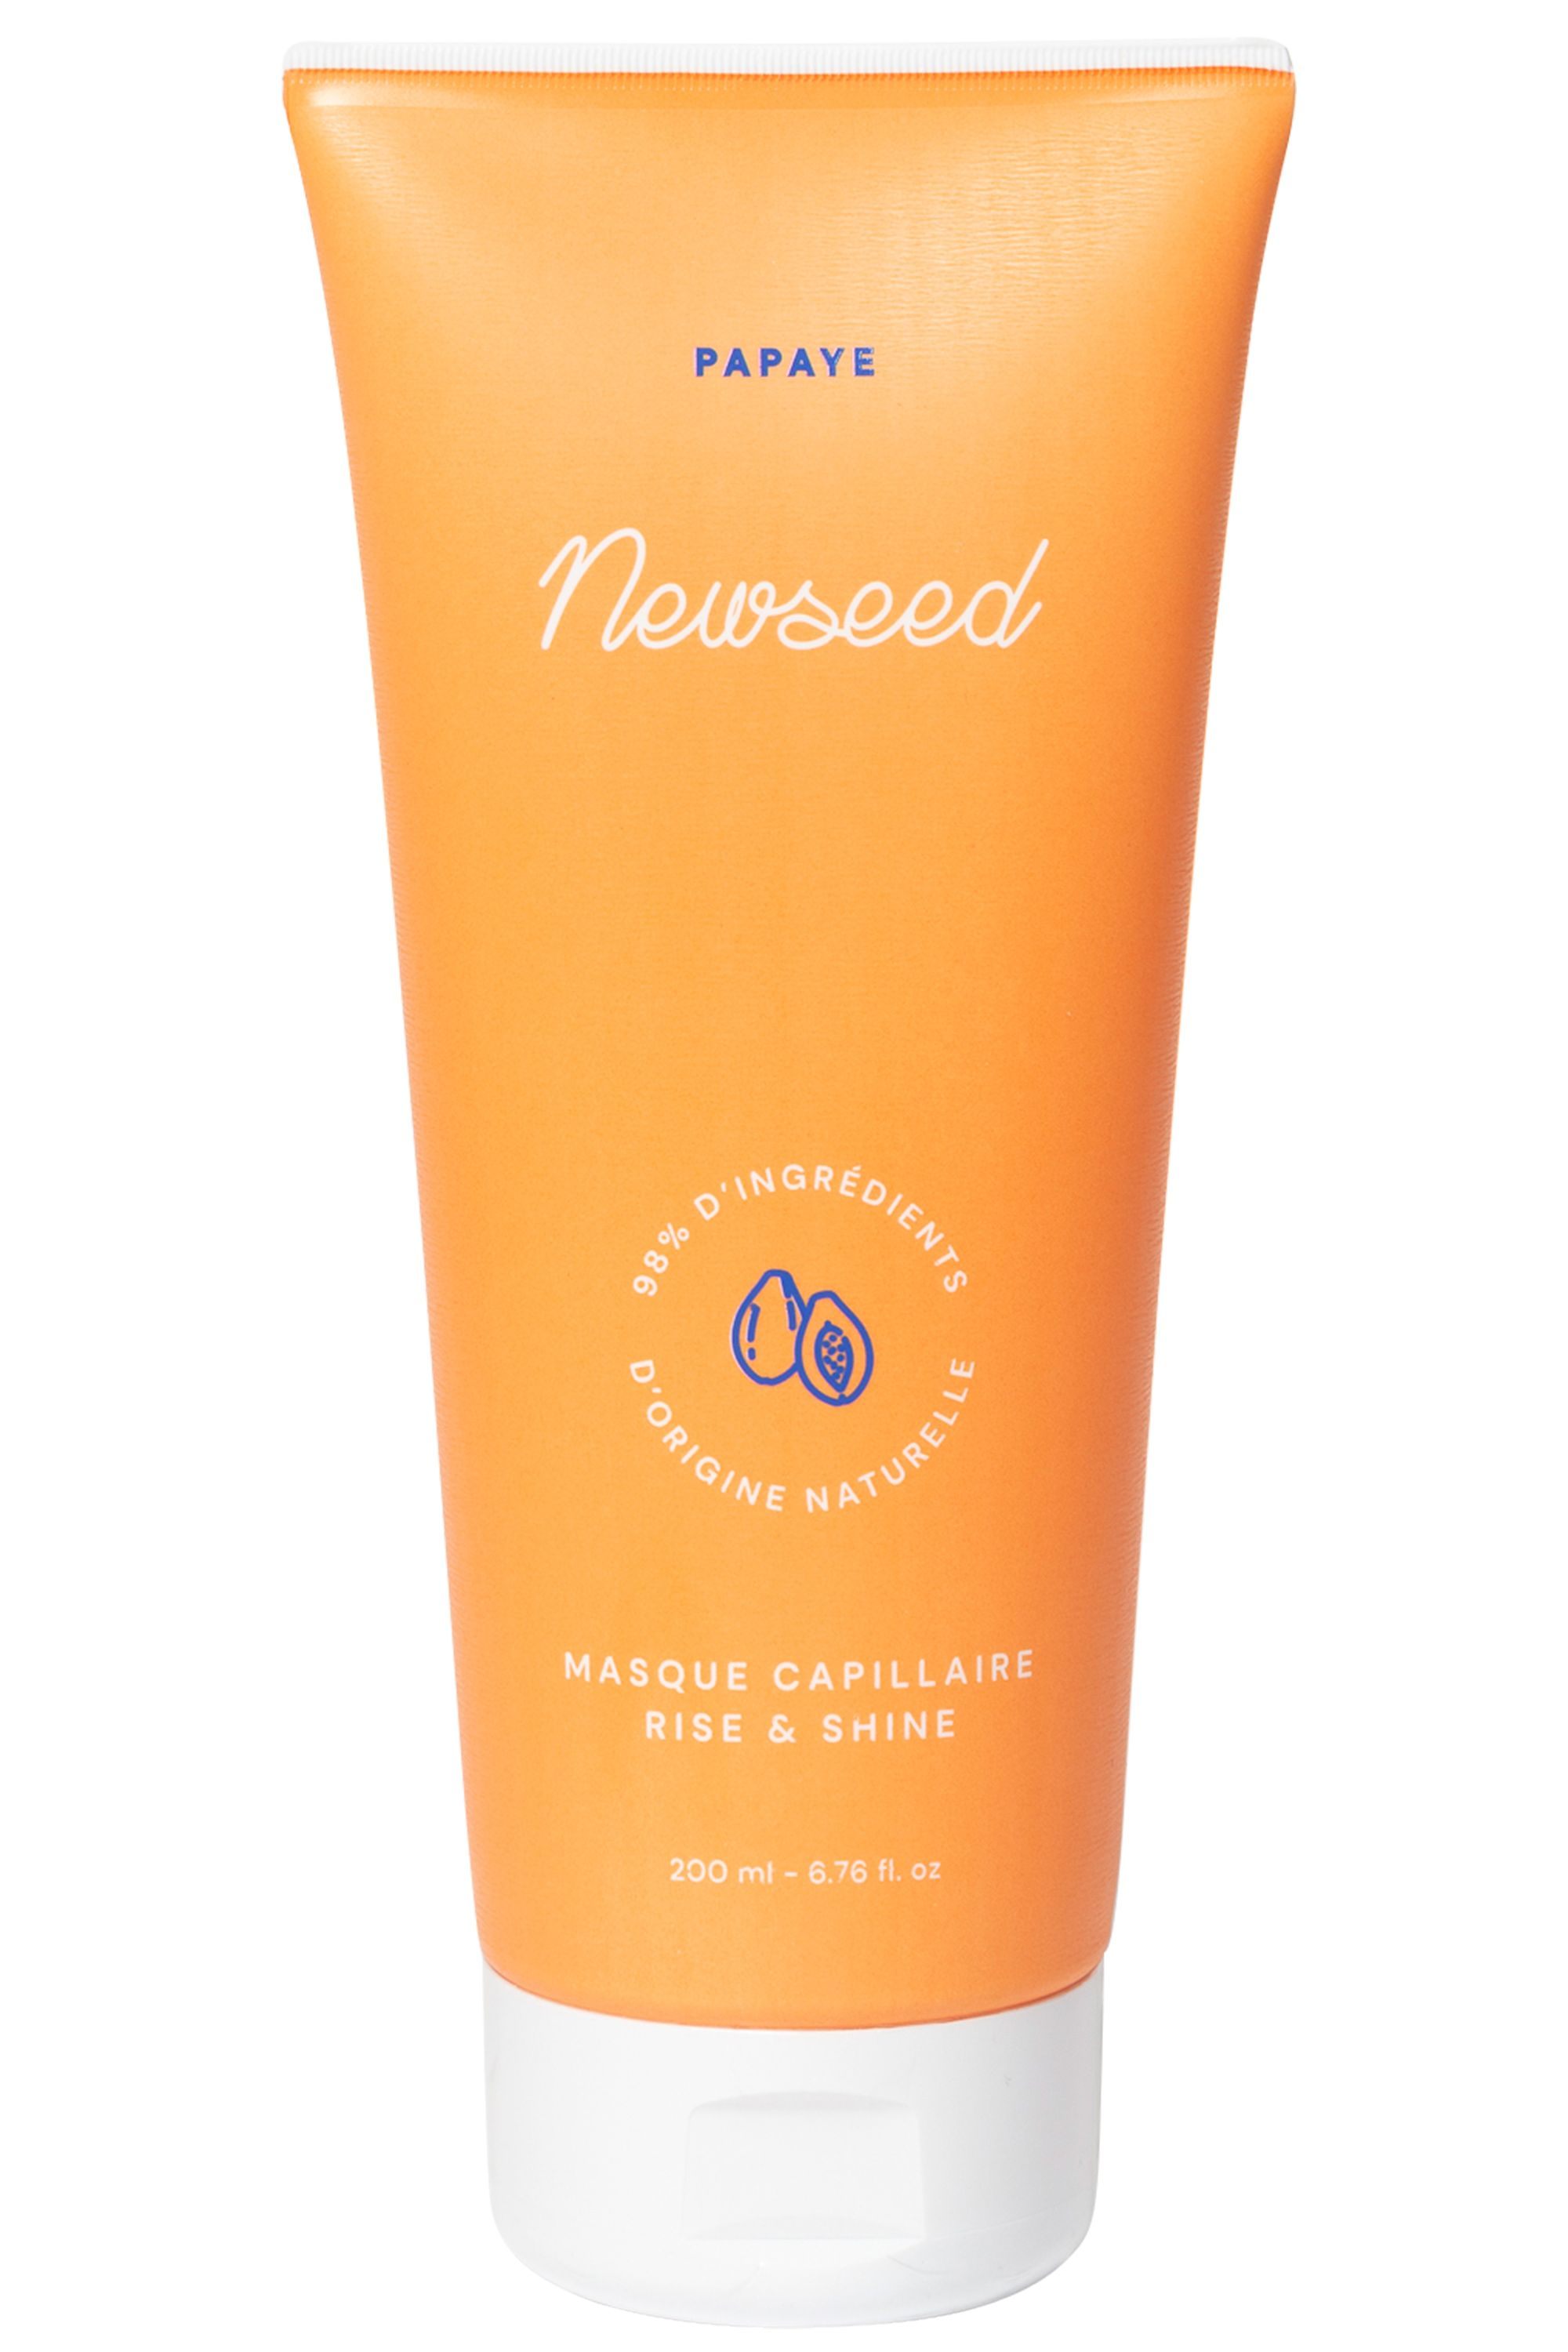 Blissim : NEWSEED - Masque capillaire coco et papaye - Masque capillaire coco et papaye